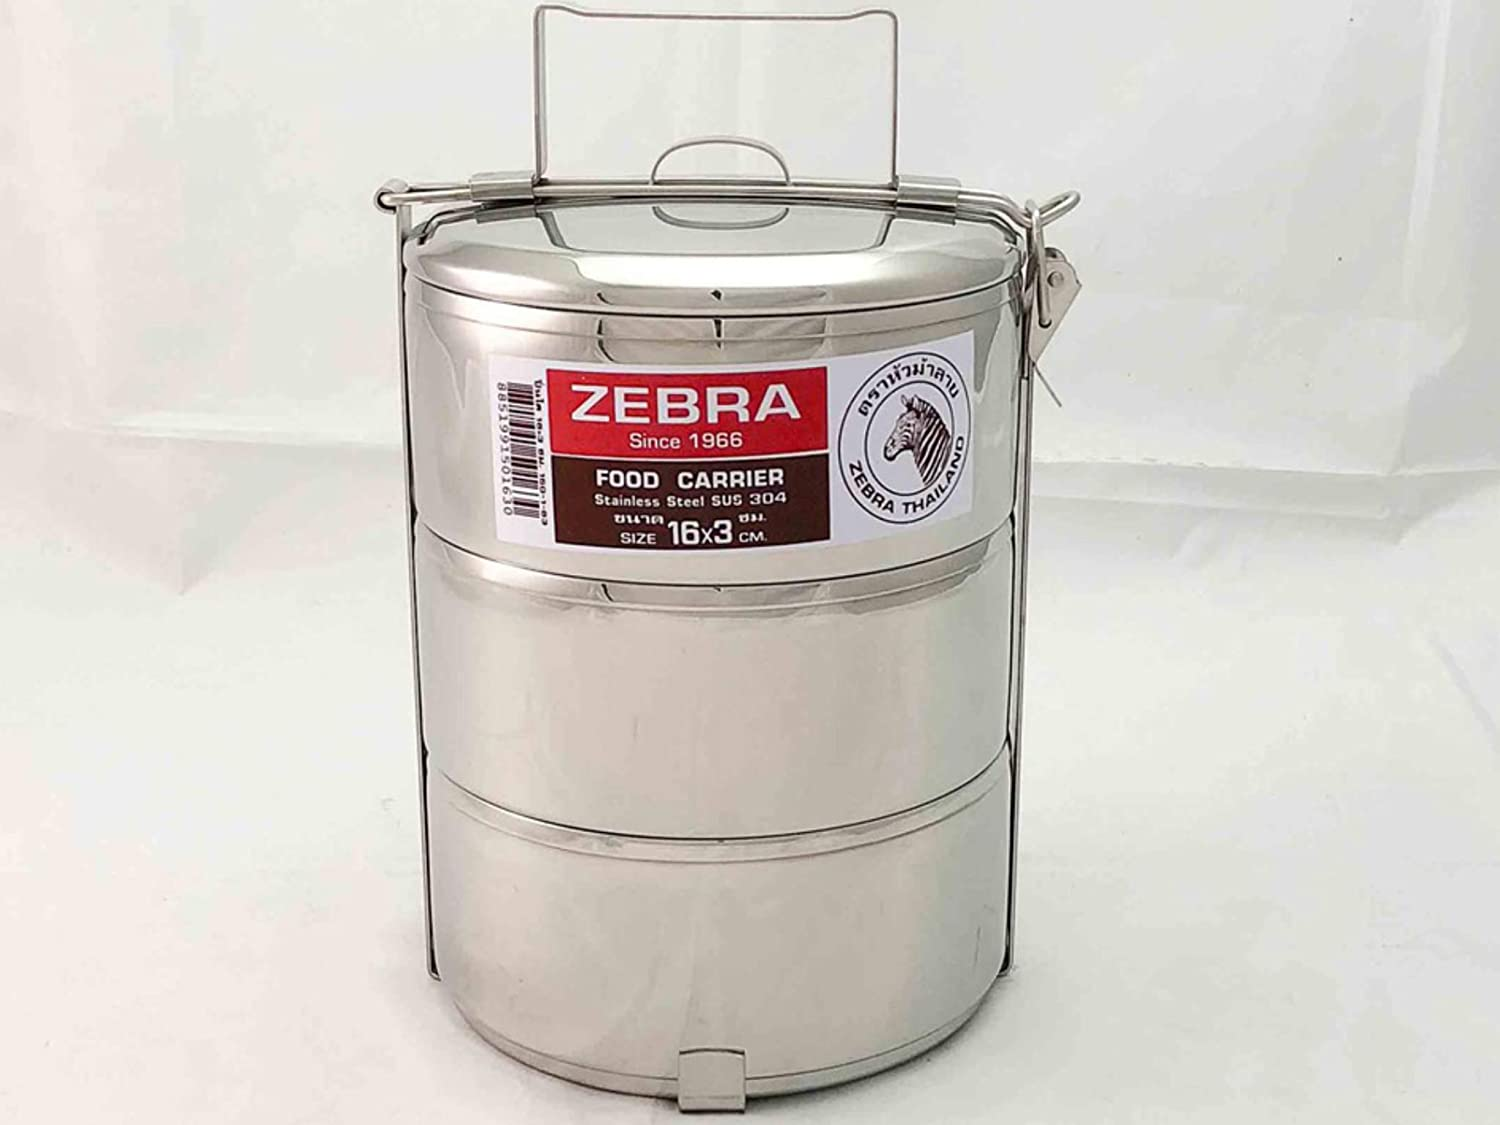 Zebra Stainless Steel (sus304) Food Carrier 3x16cm. Made in Thailand.